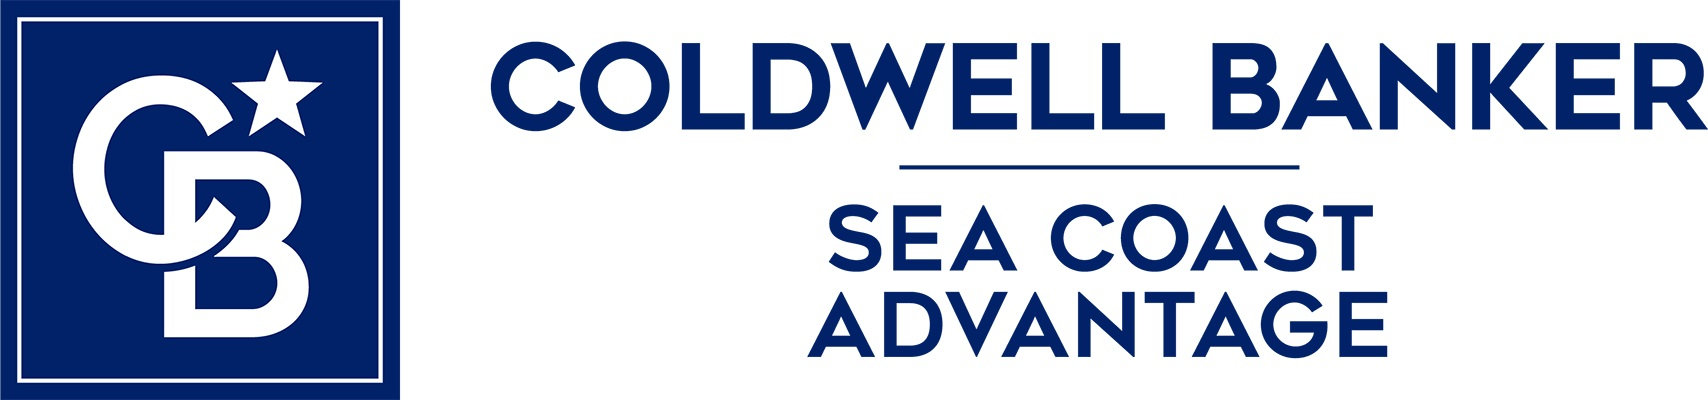 Dan Gravel - Coldwell Banker Sea Coast Advantage Realty Logo